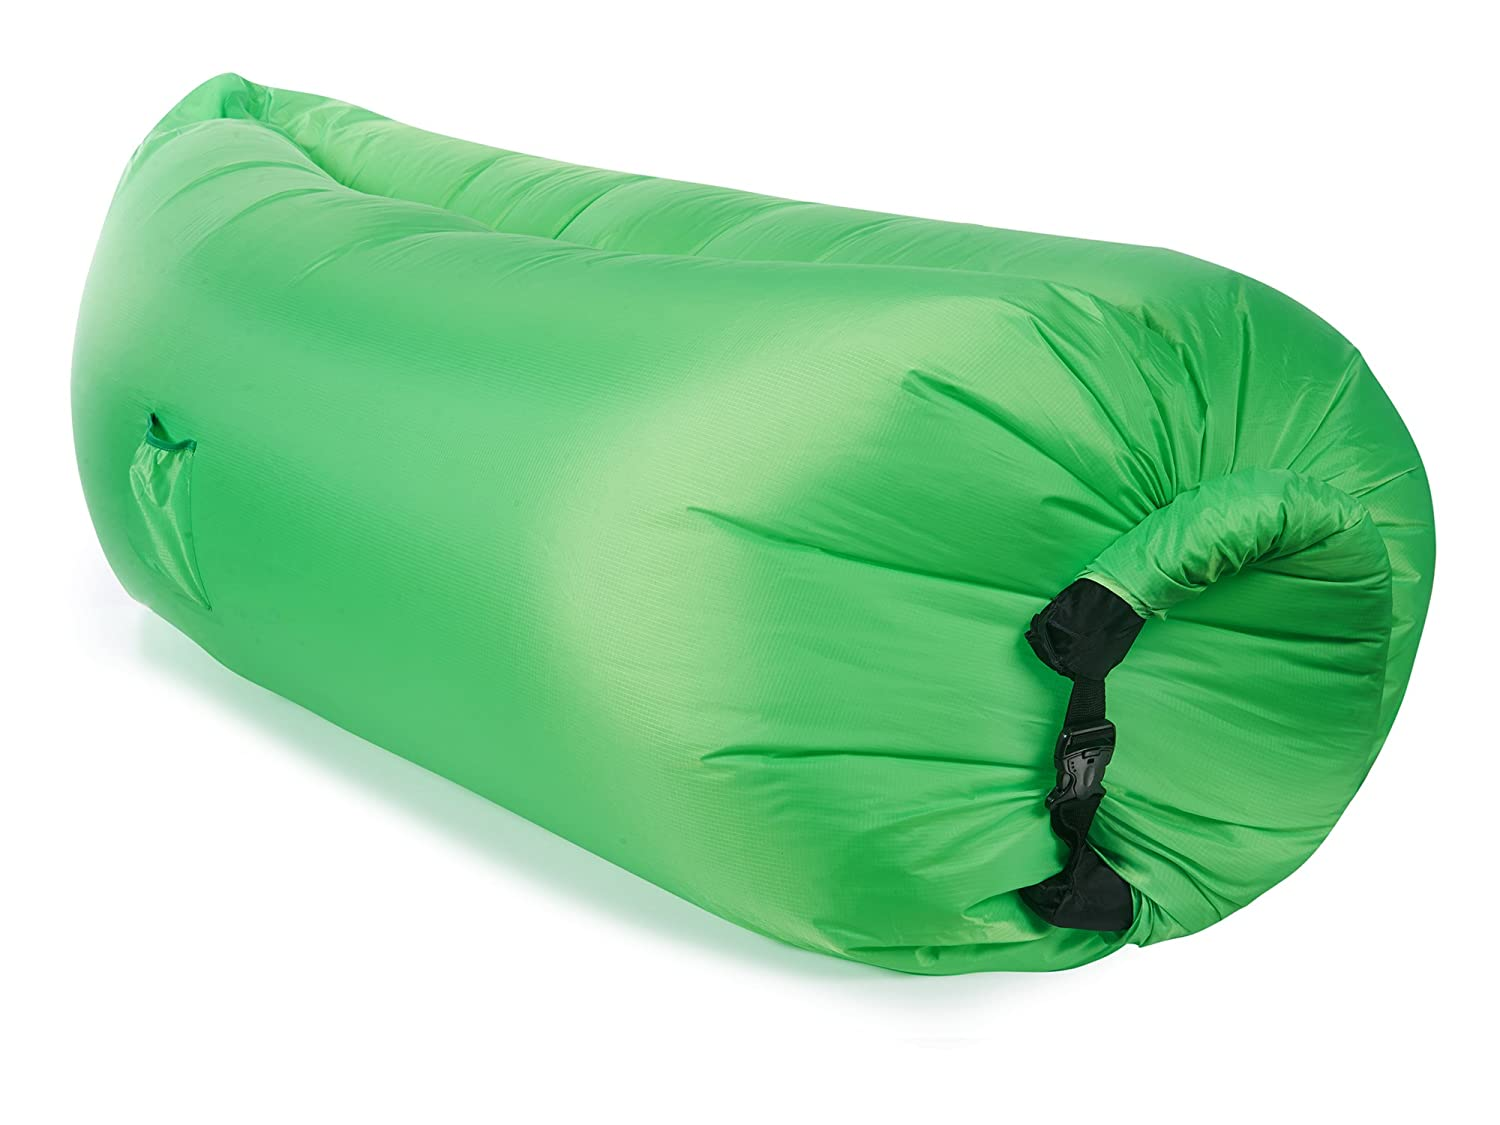 Amazon.com: Twisted Root Design Inflatable Hammock, Green: Sports U0026 Outdoors